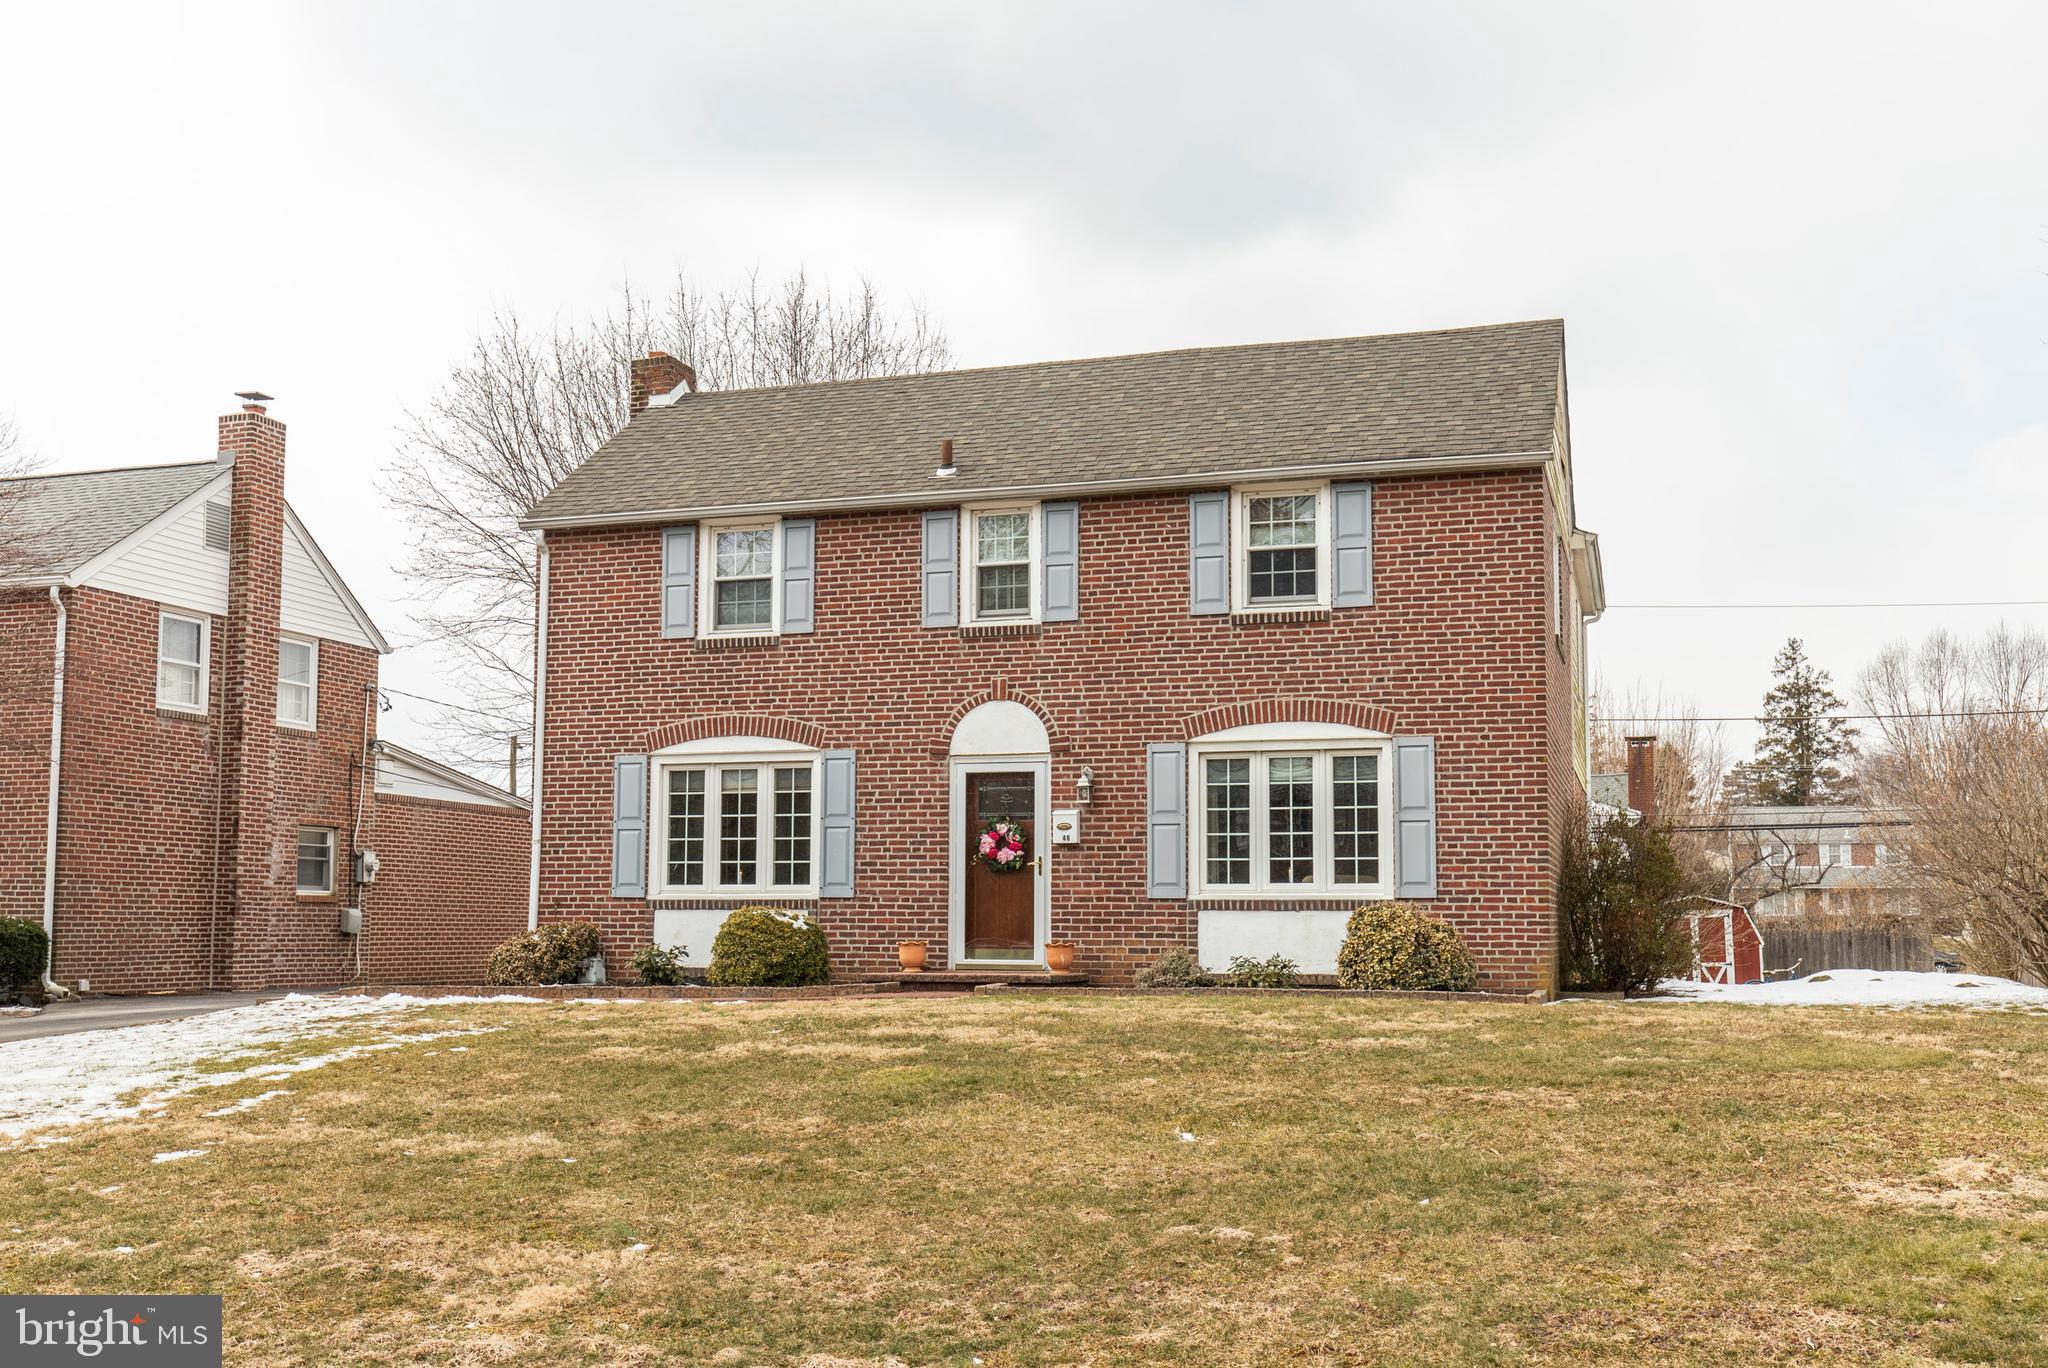 Beautifully updated, single family colonial in the heart of Springfield, PA. This large 4 BR/2BR home has been upgraded with a large, two story addition that provides over 2,100sq ft. of total living space. Highlights of this property include private master bathroom, finished basement and back deck located off of the kitchen. Driveway space and ample street parking available. Located within the Springfield school district, with plans for brand new, state-of-the-art high school to be completed by July of 2020. Schedule a time to view this turnkey property in a highly sought after neighborhood and school district.